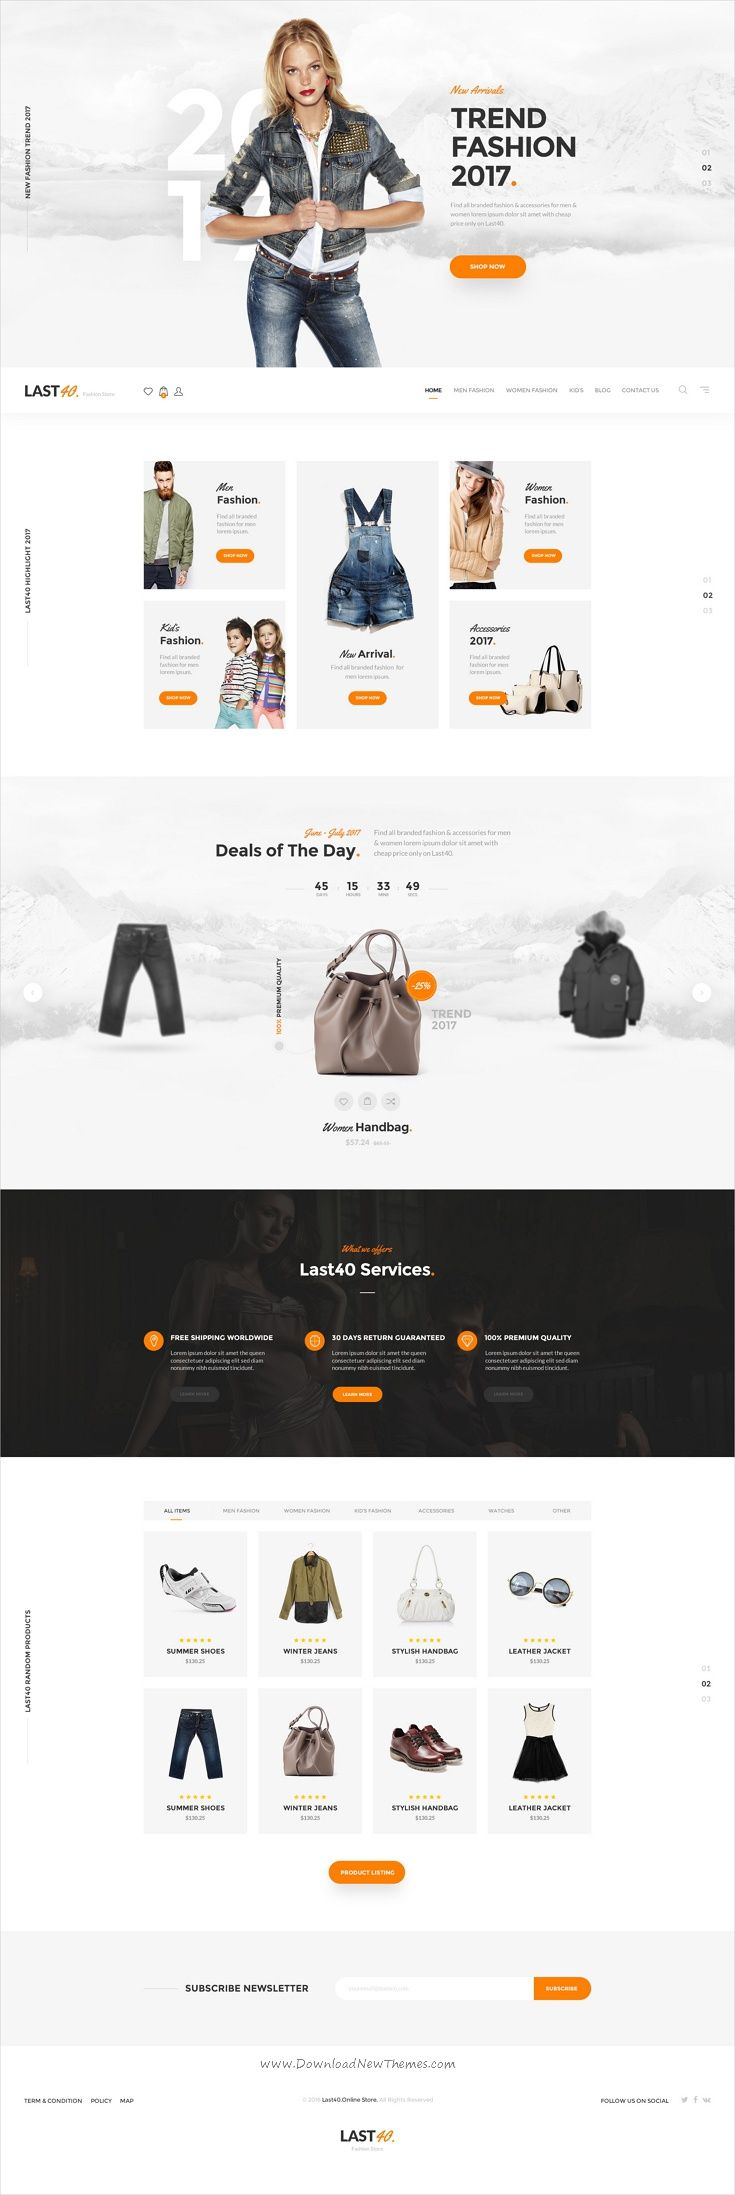 Last40 is a trending minimalist style #PSD template for stunning #eCommerce website with 4 homepage layouts and 15 organized PSD pages download now➩  https://themeforest.net/item/last40-store-ecommerce-psd-template/19495204?ref=Datasata